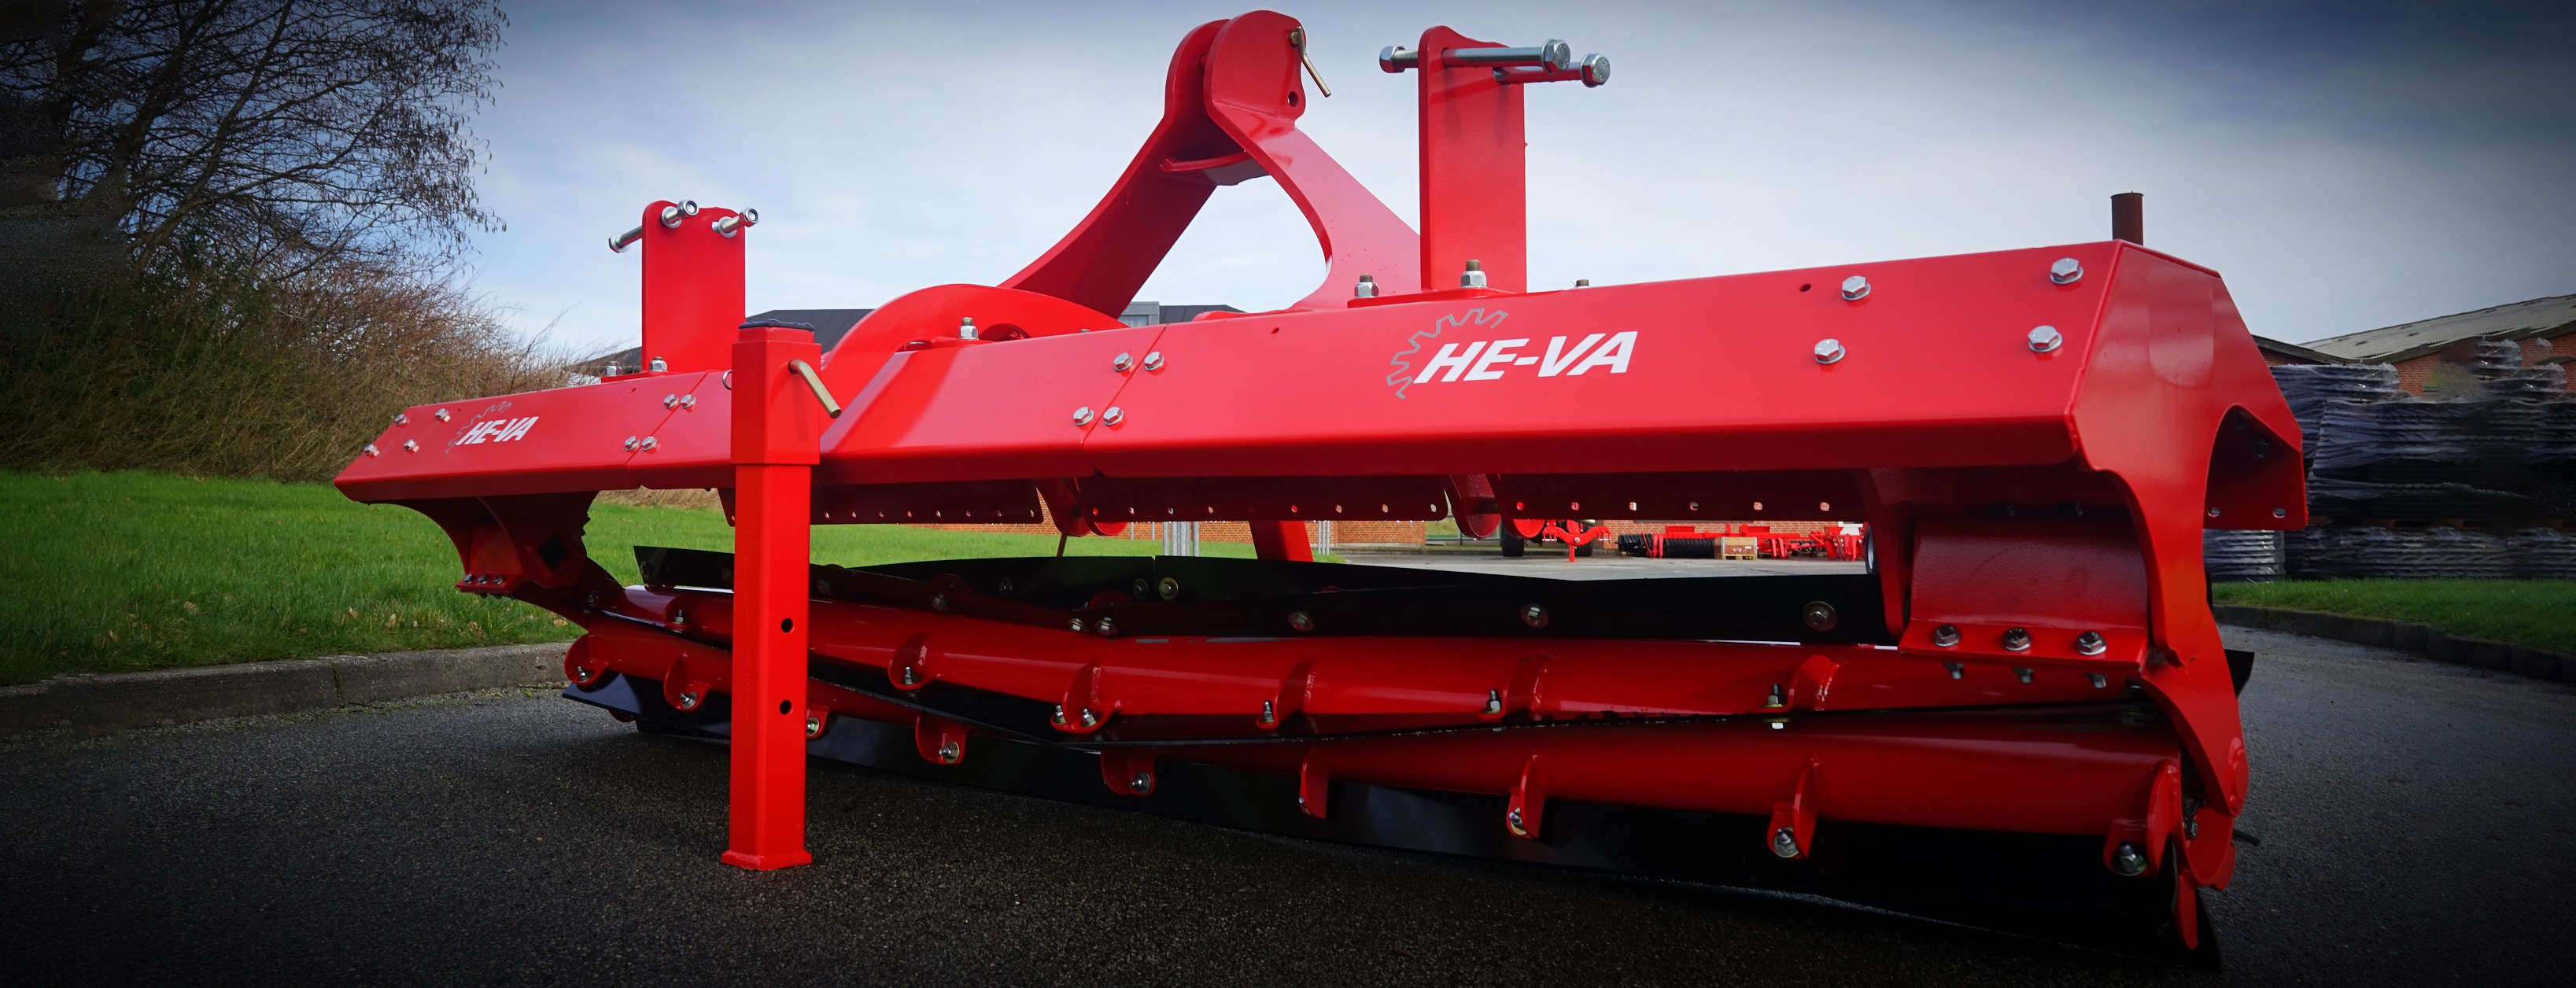 Top-Cutter, Effective and fuel-efficient laying/shredding of stubble and catch crops